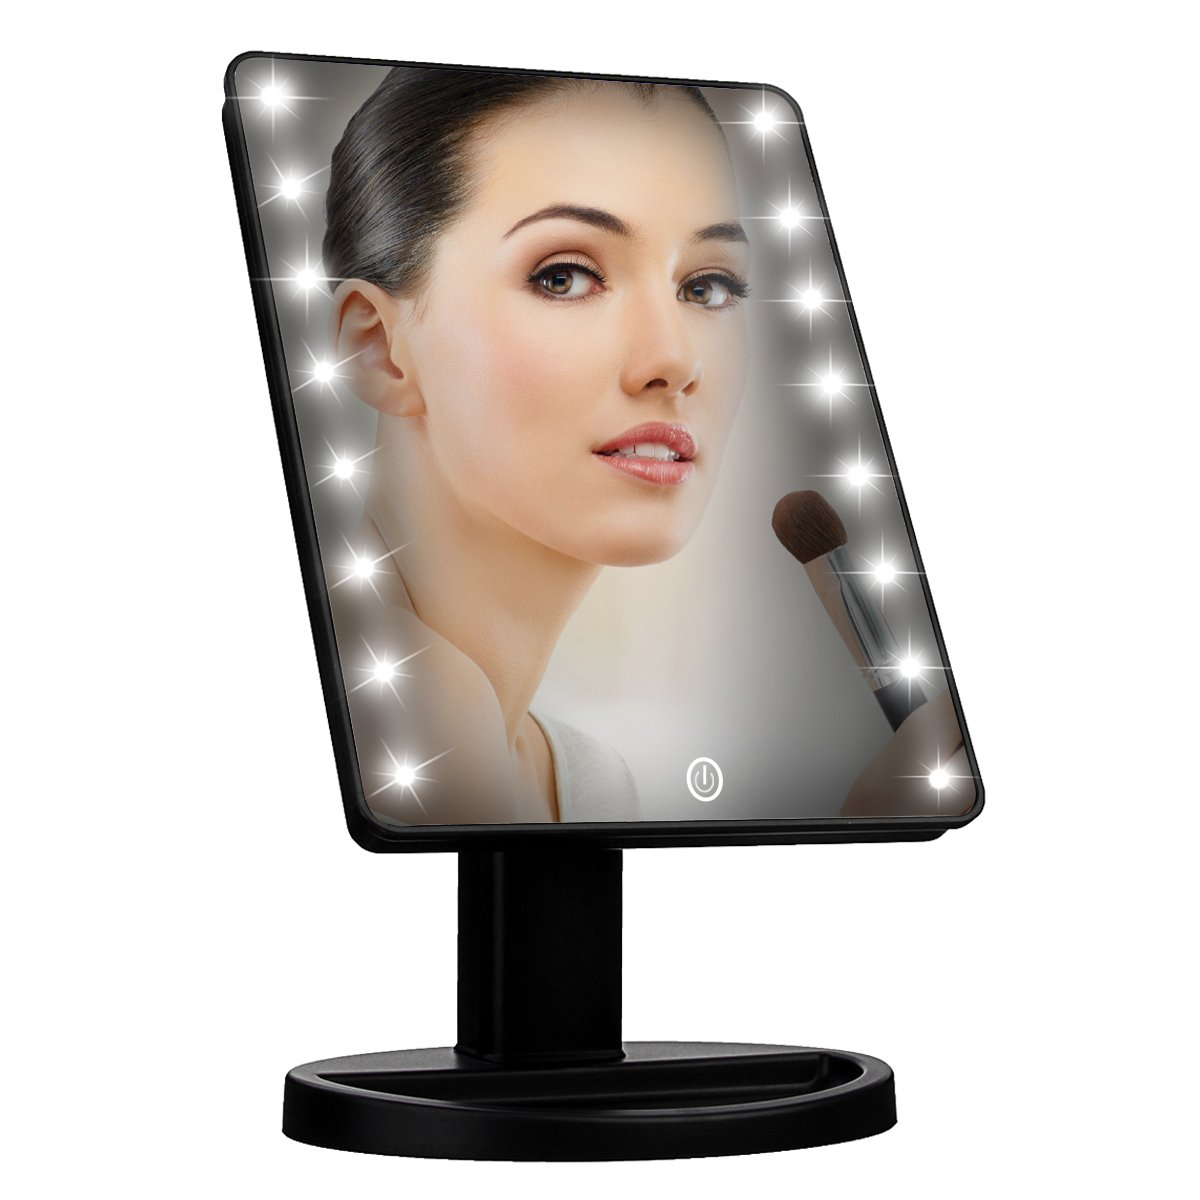 Makeup Mirror with Lights,Charminer 16 LED Lighted Makeup Mirror Touch Illuminated Cosmetic Desktop Vanity Mirror with Stand,Handy Touching On/Off